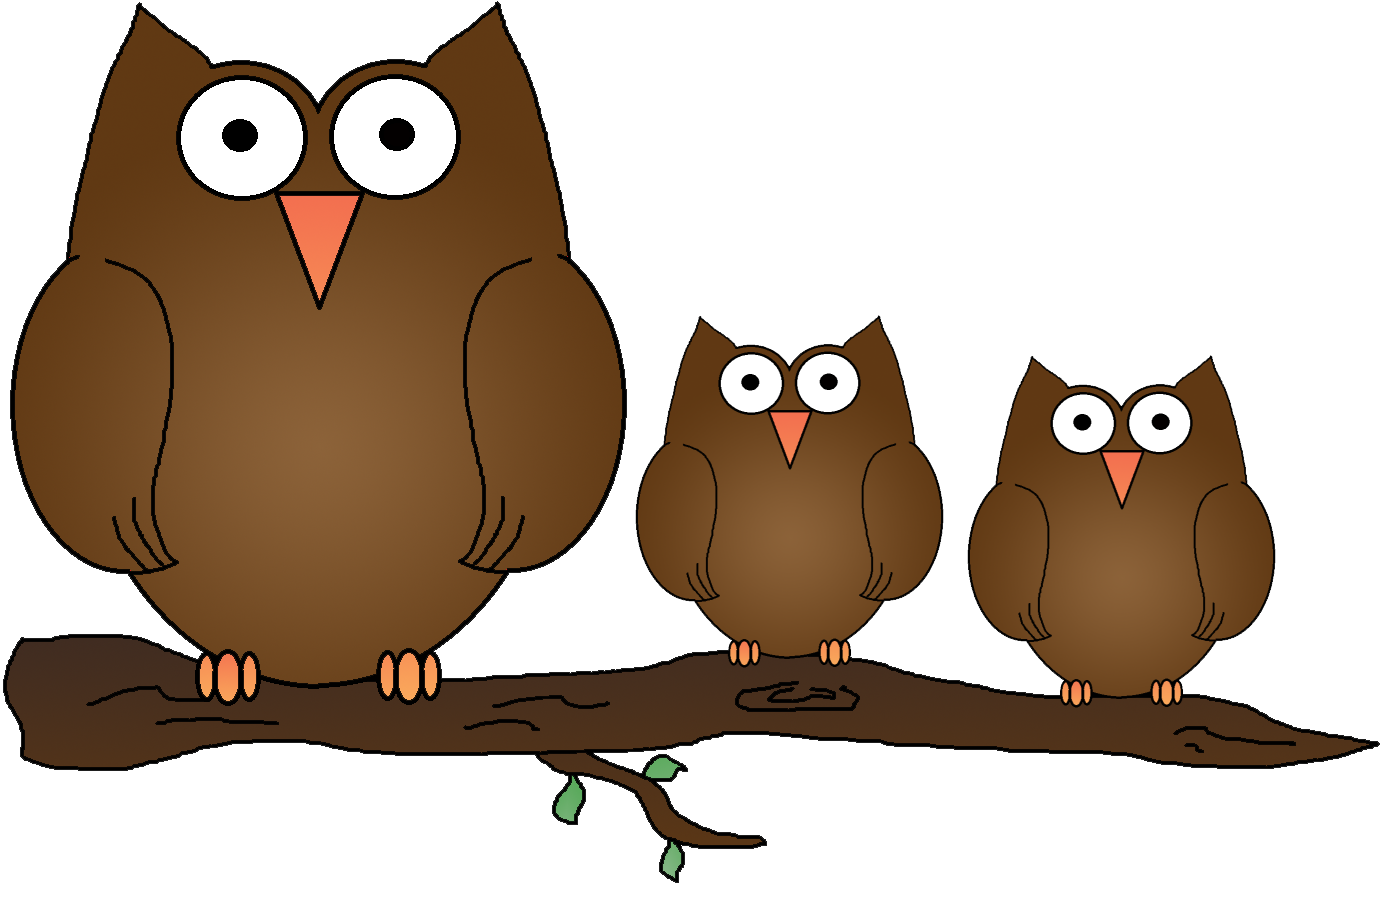 Owl clipart brown Clipart Clipartion Free Clip Owl